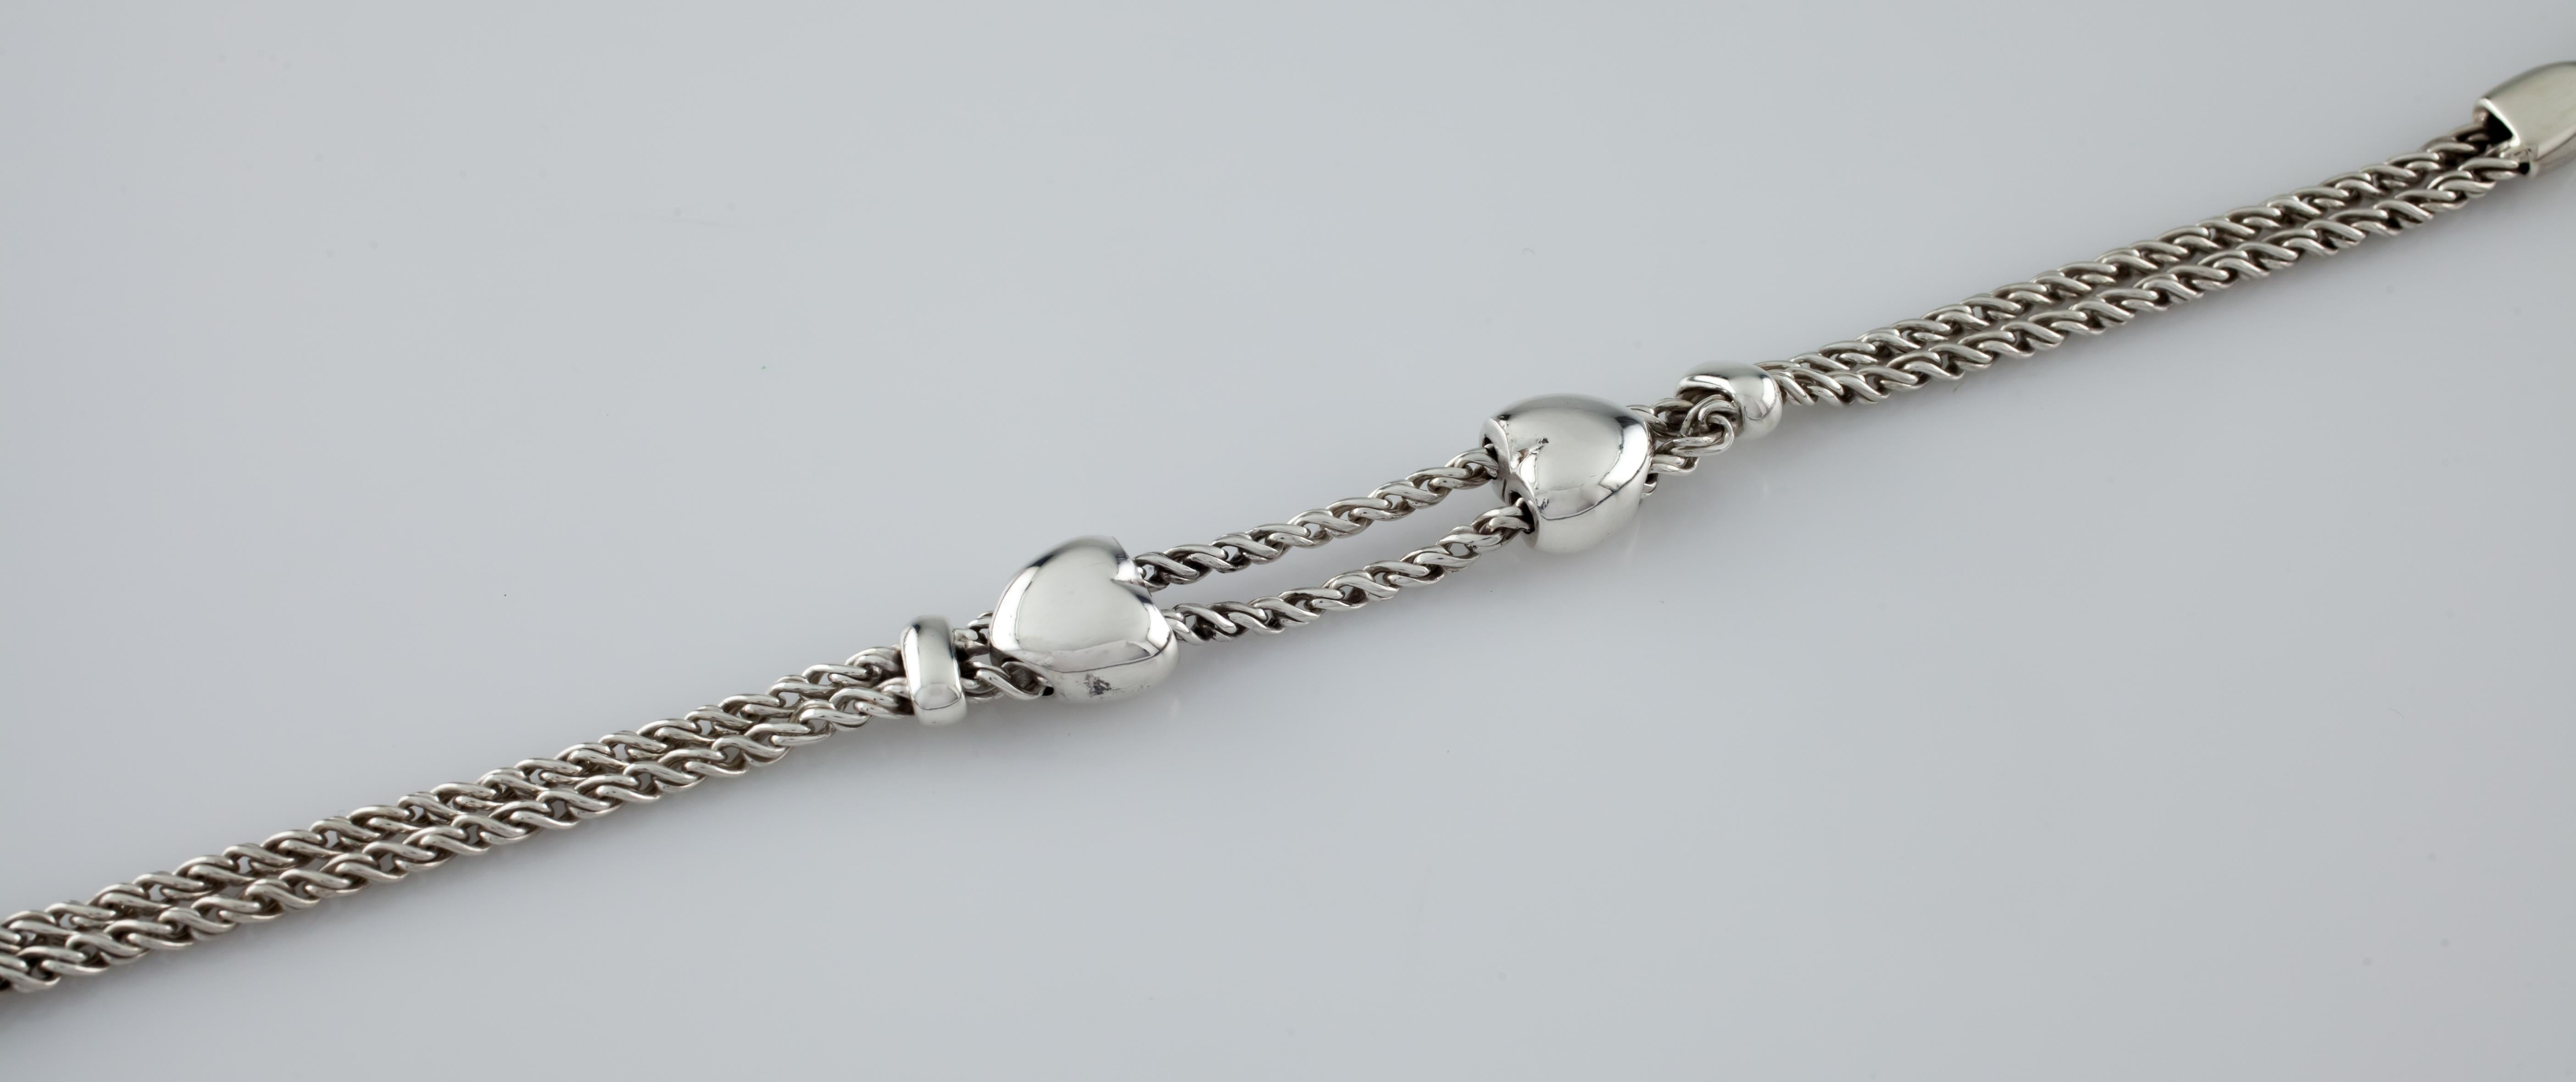 f4e24afd1 Tiffany and Co. Sterling Silver Double Heart Slider Chain Bracelet Retired  at 1stdibs